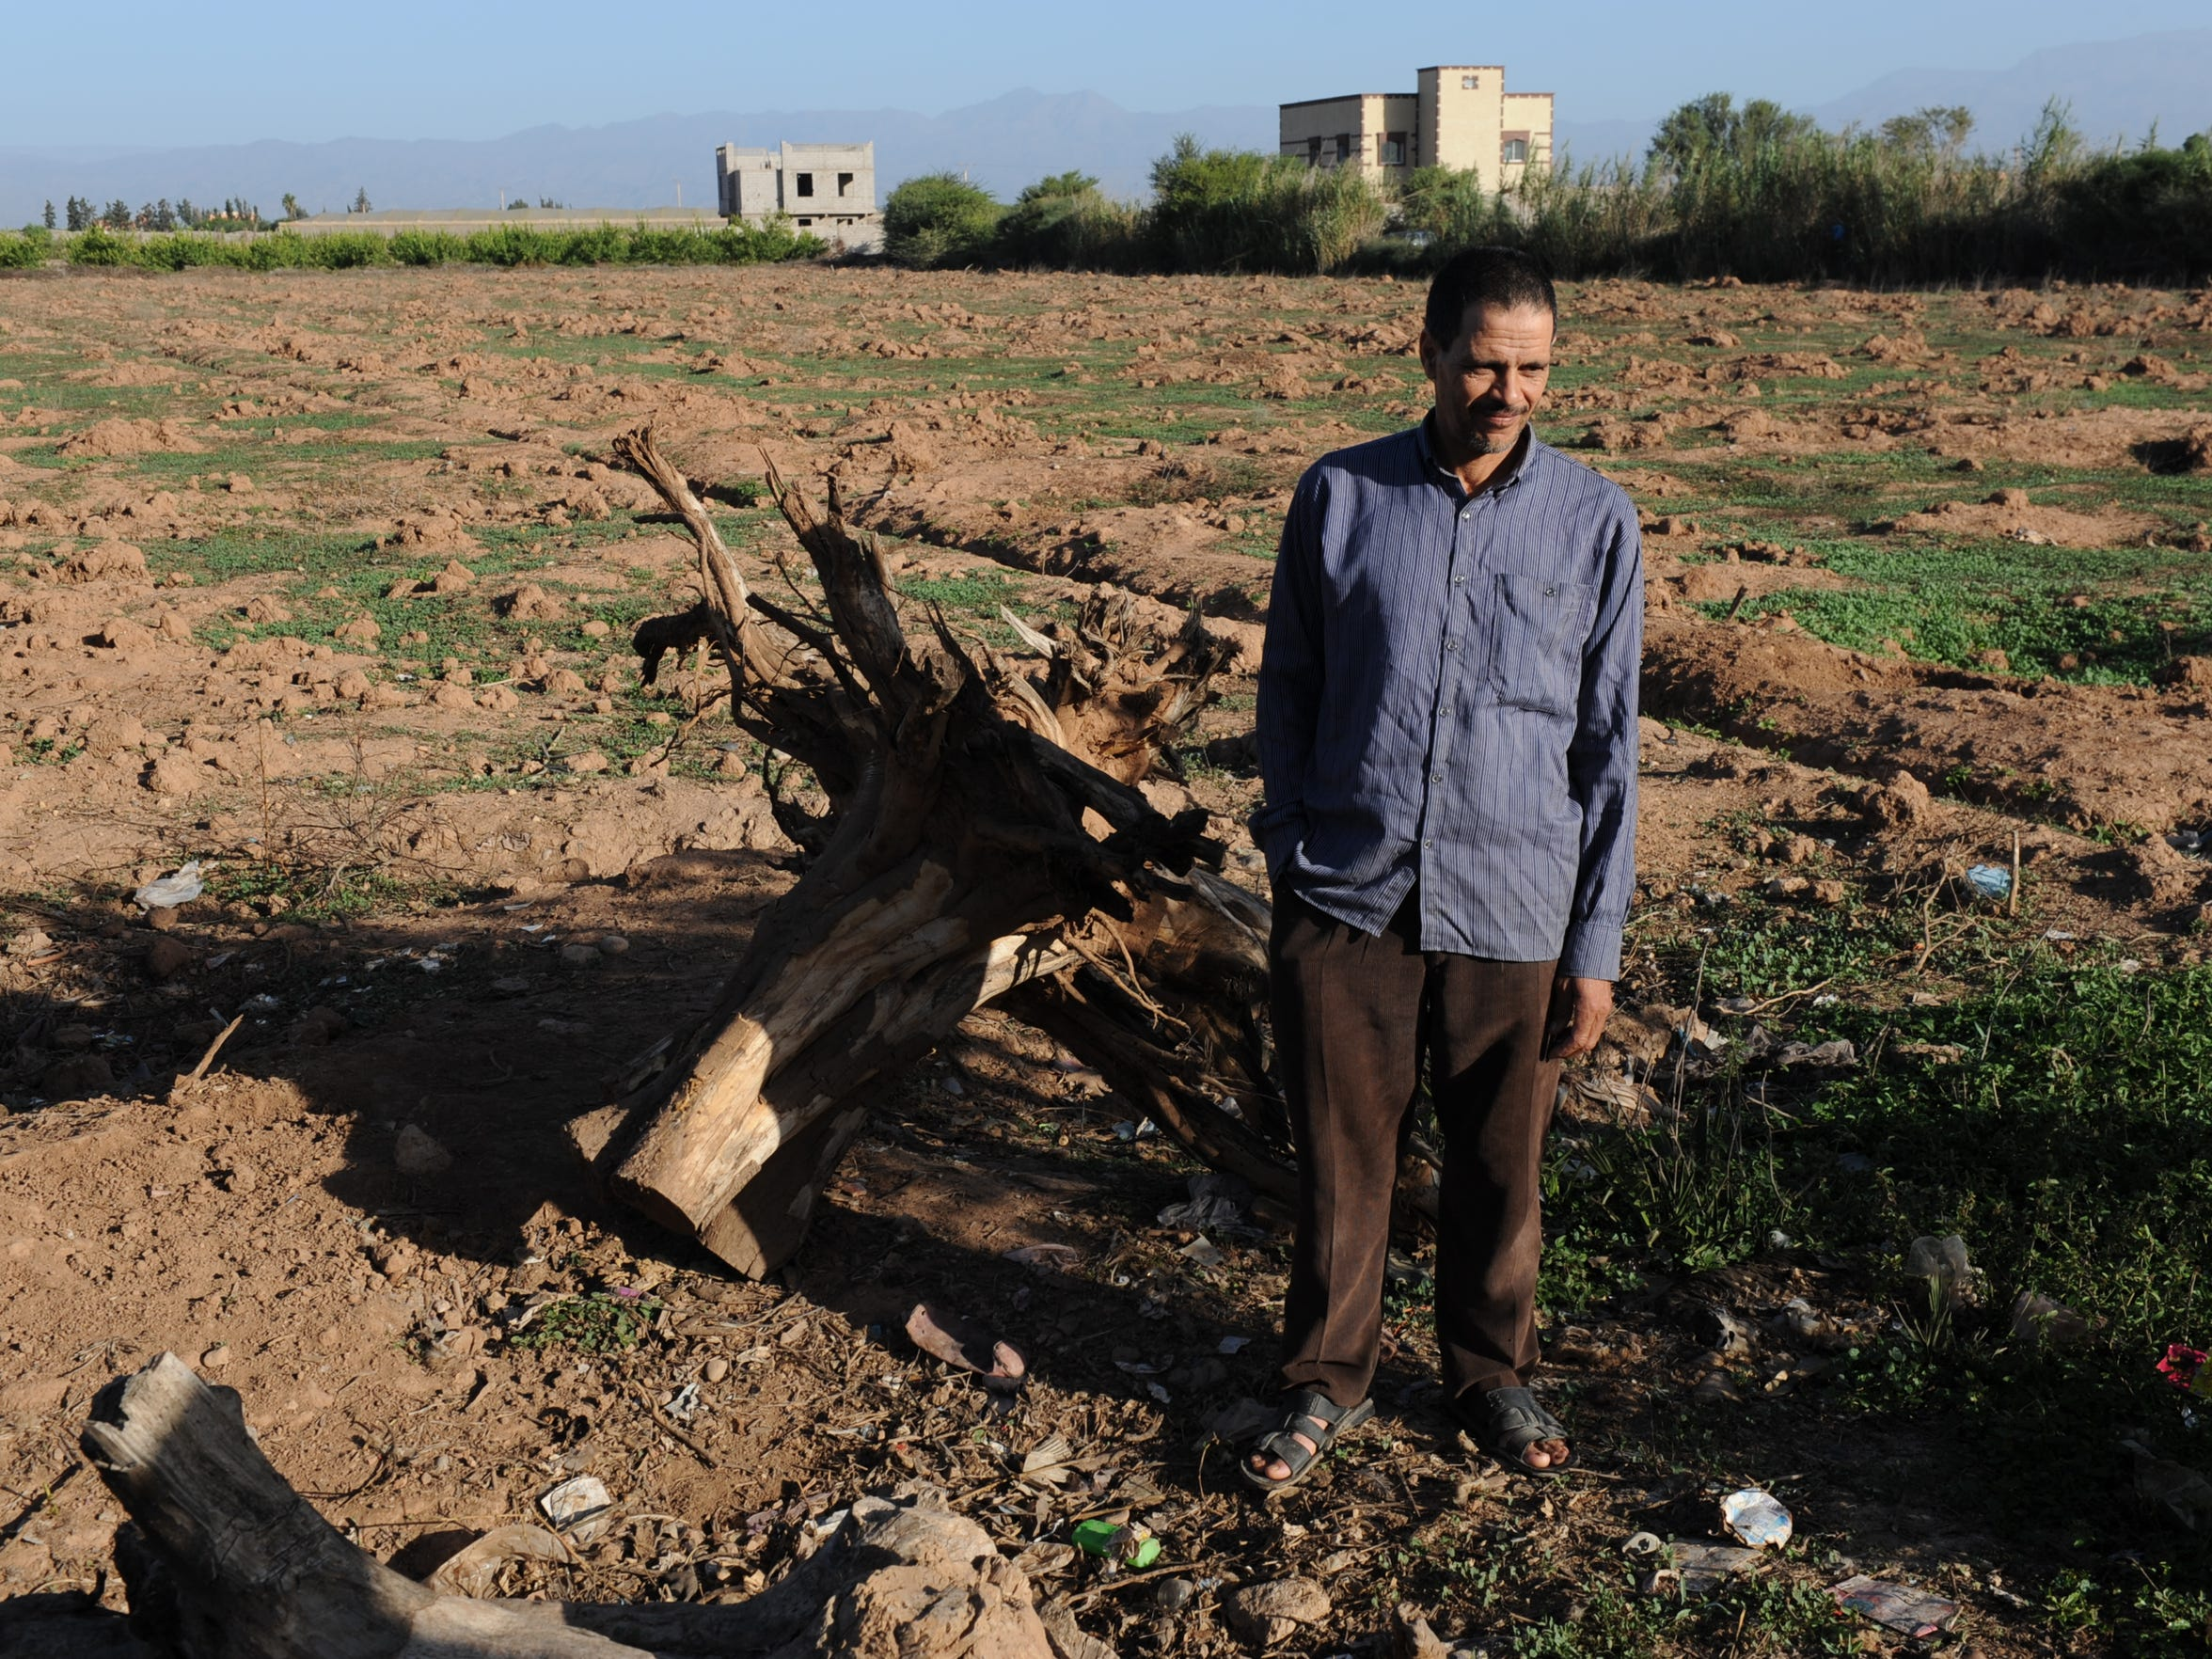 Mbarek Belkadi stands next to the stump of an orange tree on his family''s farm in Sebt El Guerdane. He said earning a living has been difficult the past several years since their well went dry and the family uprooted their trees.